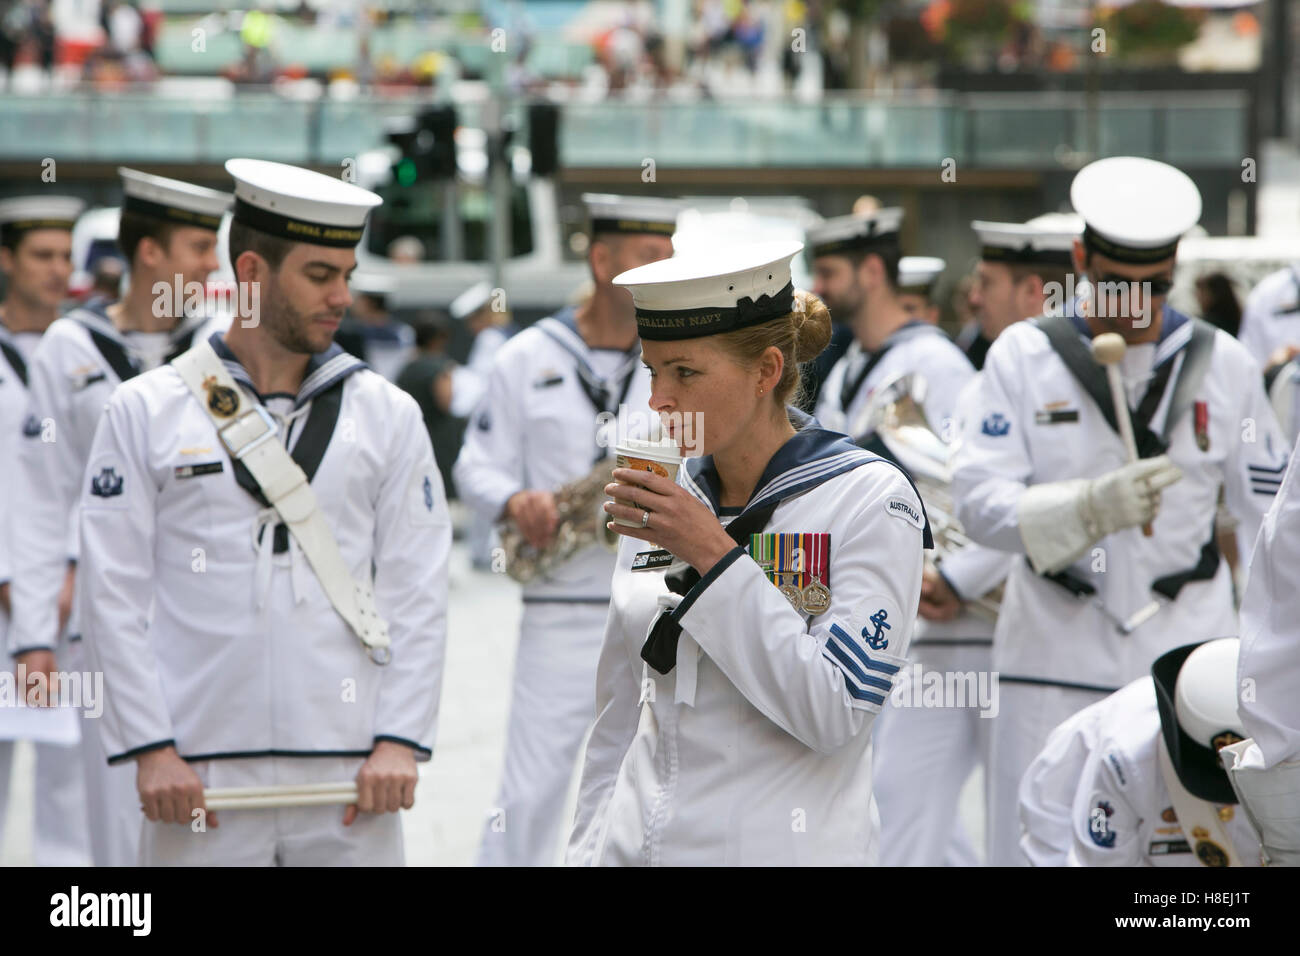 Royal Australian Navy band at the Remembrance Armistice Day service in Martin Place Sydney on 11th November 2016 - Stock Image